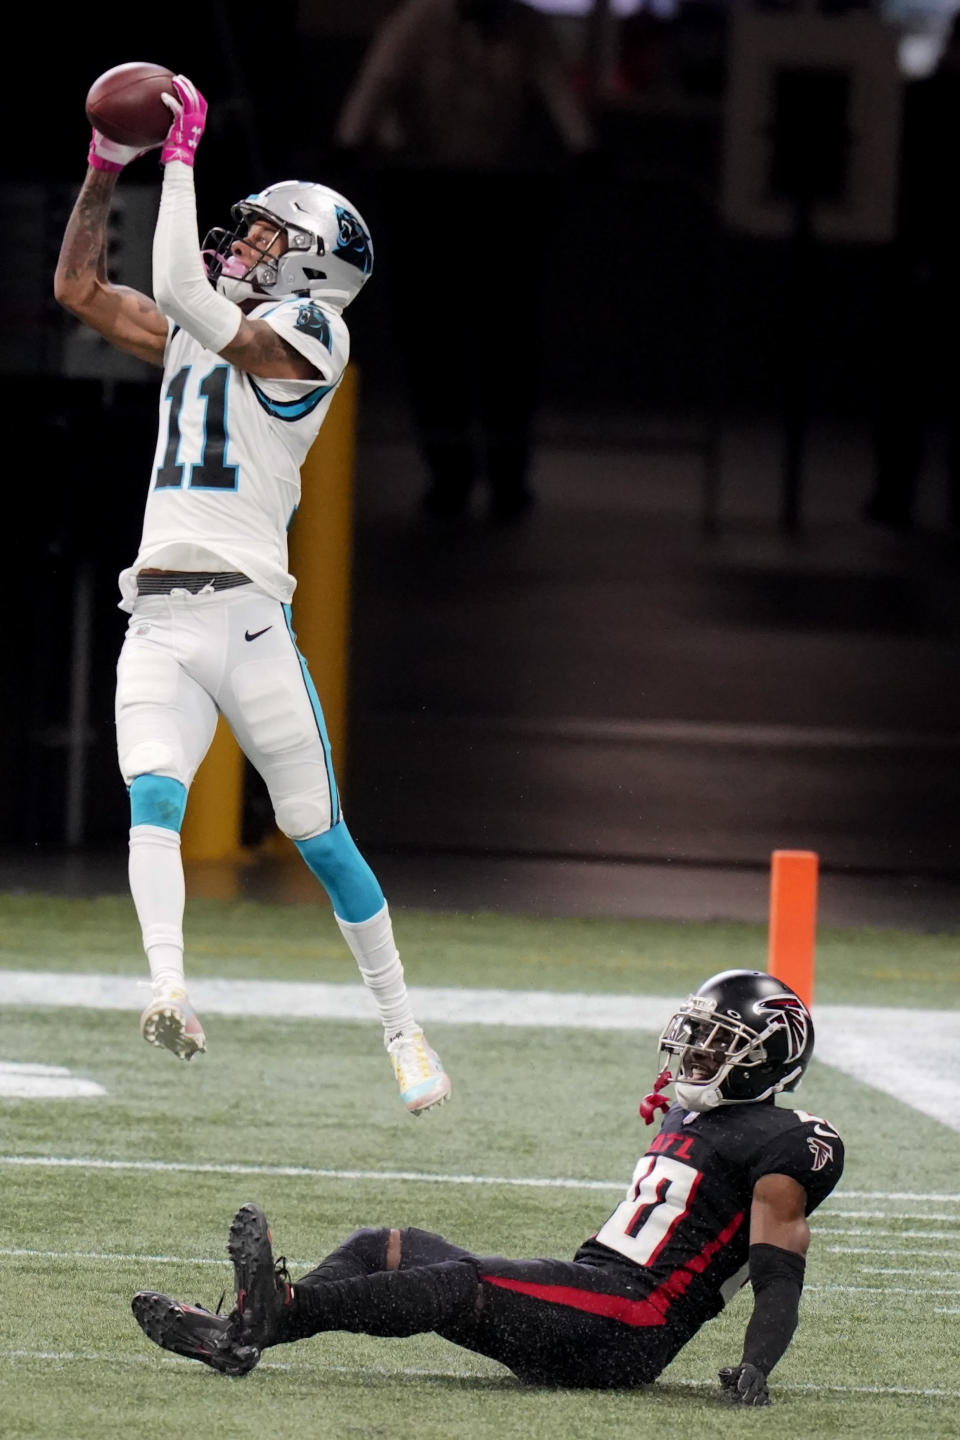 Carolina Panthers wide receiver Robby Anderson (11) makes the catch over Atlanta Falcons defensive back Kendall Sheffield (20) during the first half of an NFL football game, Sunday, Oct. 11, 2020, in Atlanta. Sheffield was injured on the play. (AP Photo/Brynn Anderson)